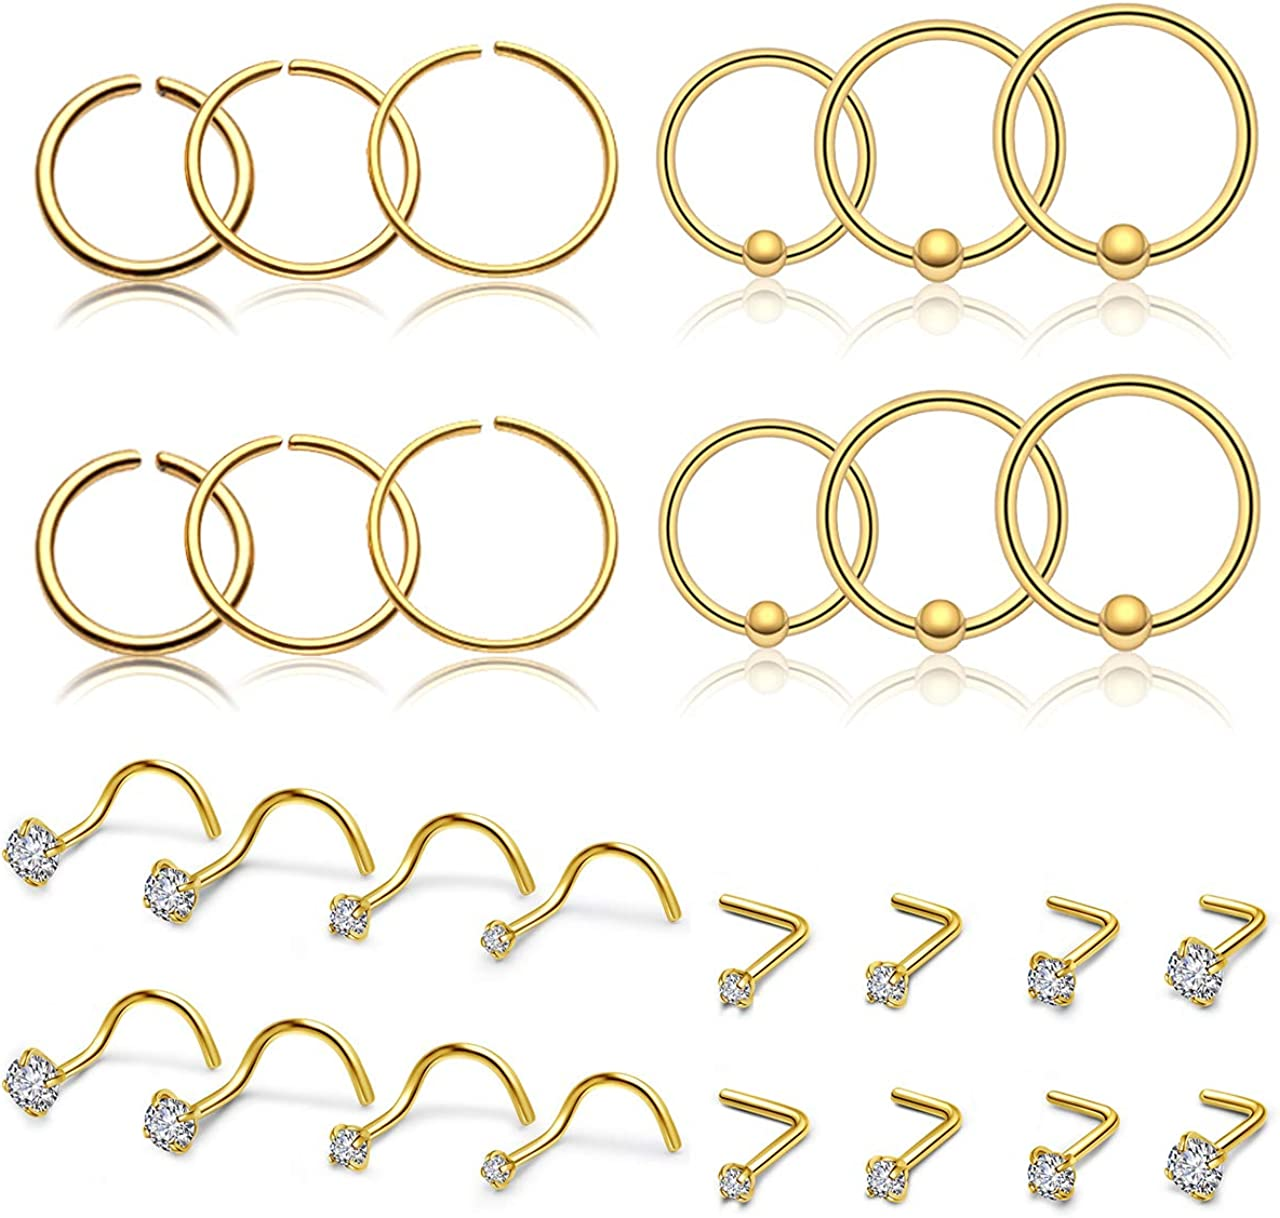 PiercingJ 28pcs Nose Rings for Women 20G Stainless Steel Nose Studs Nose Rings Hoop Crystal L-Shaped Screw Nose Rings Body Piercing Jewelry